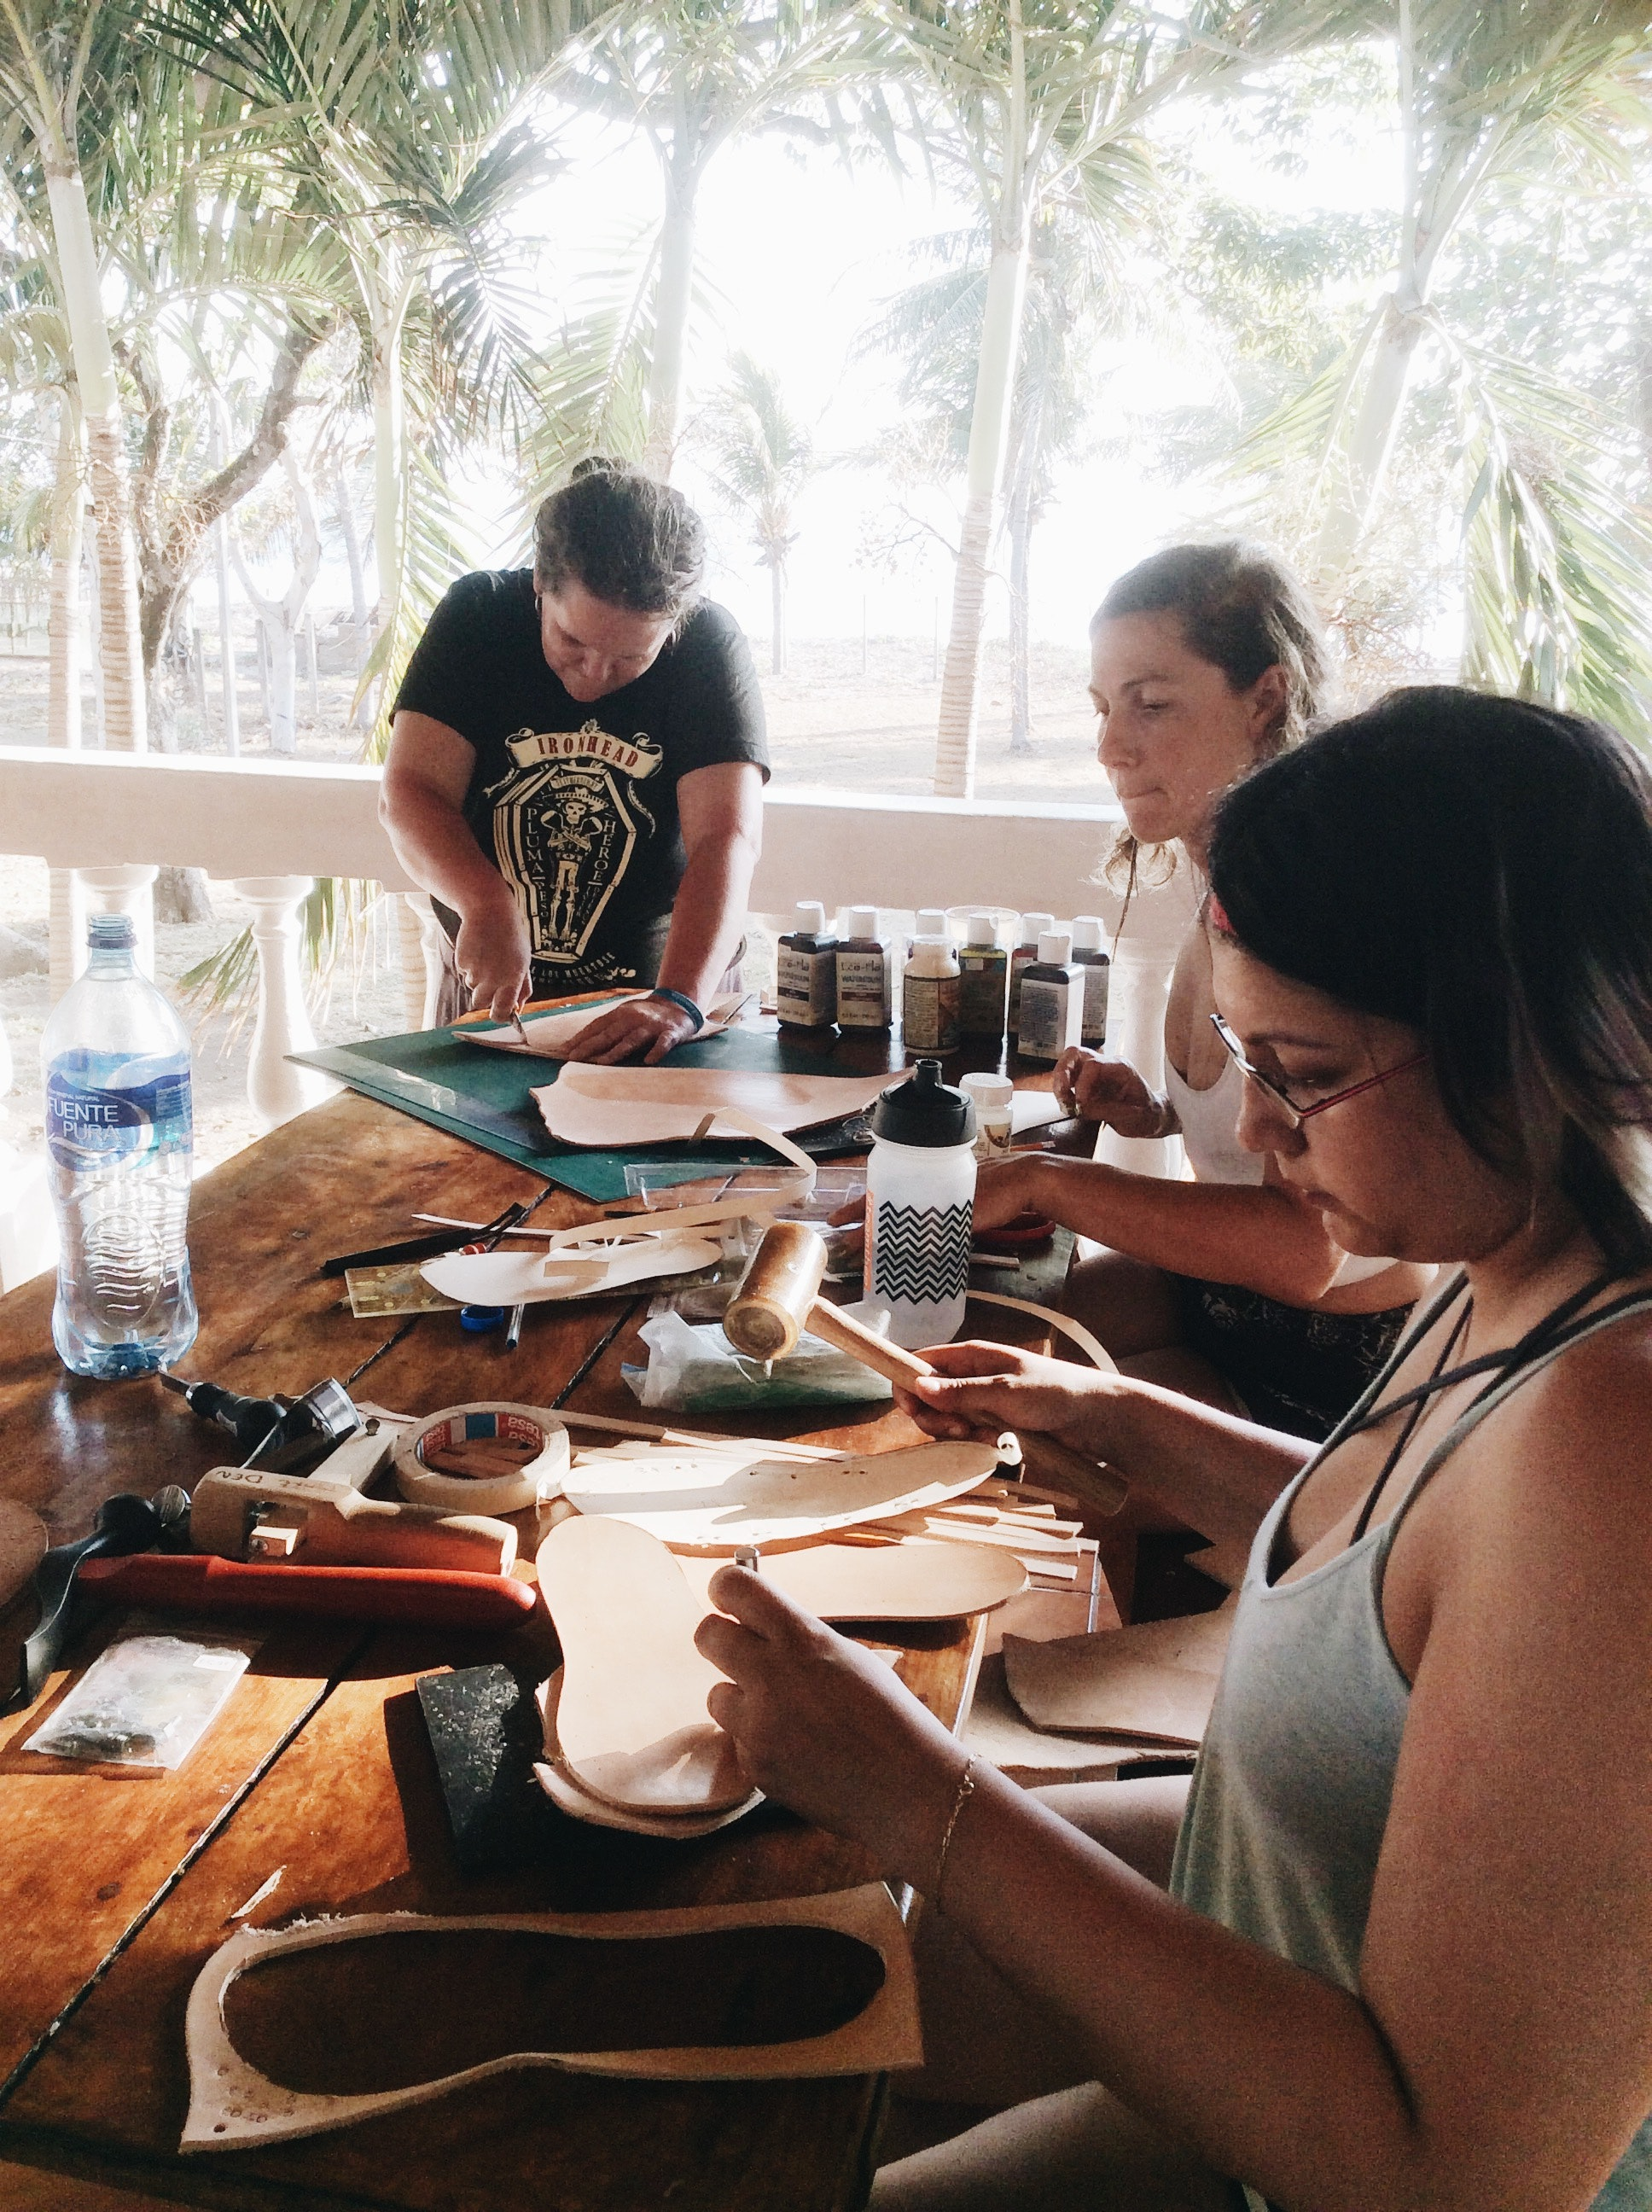 At El Coco Loco's Makers Retreat, crafters learned to make leather sandals.